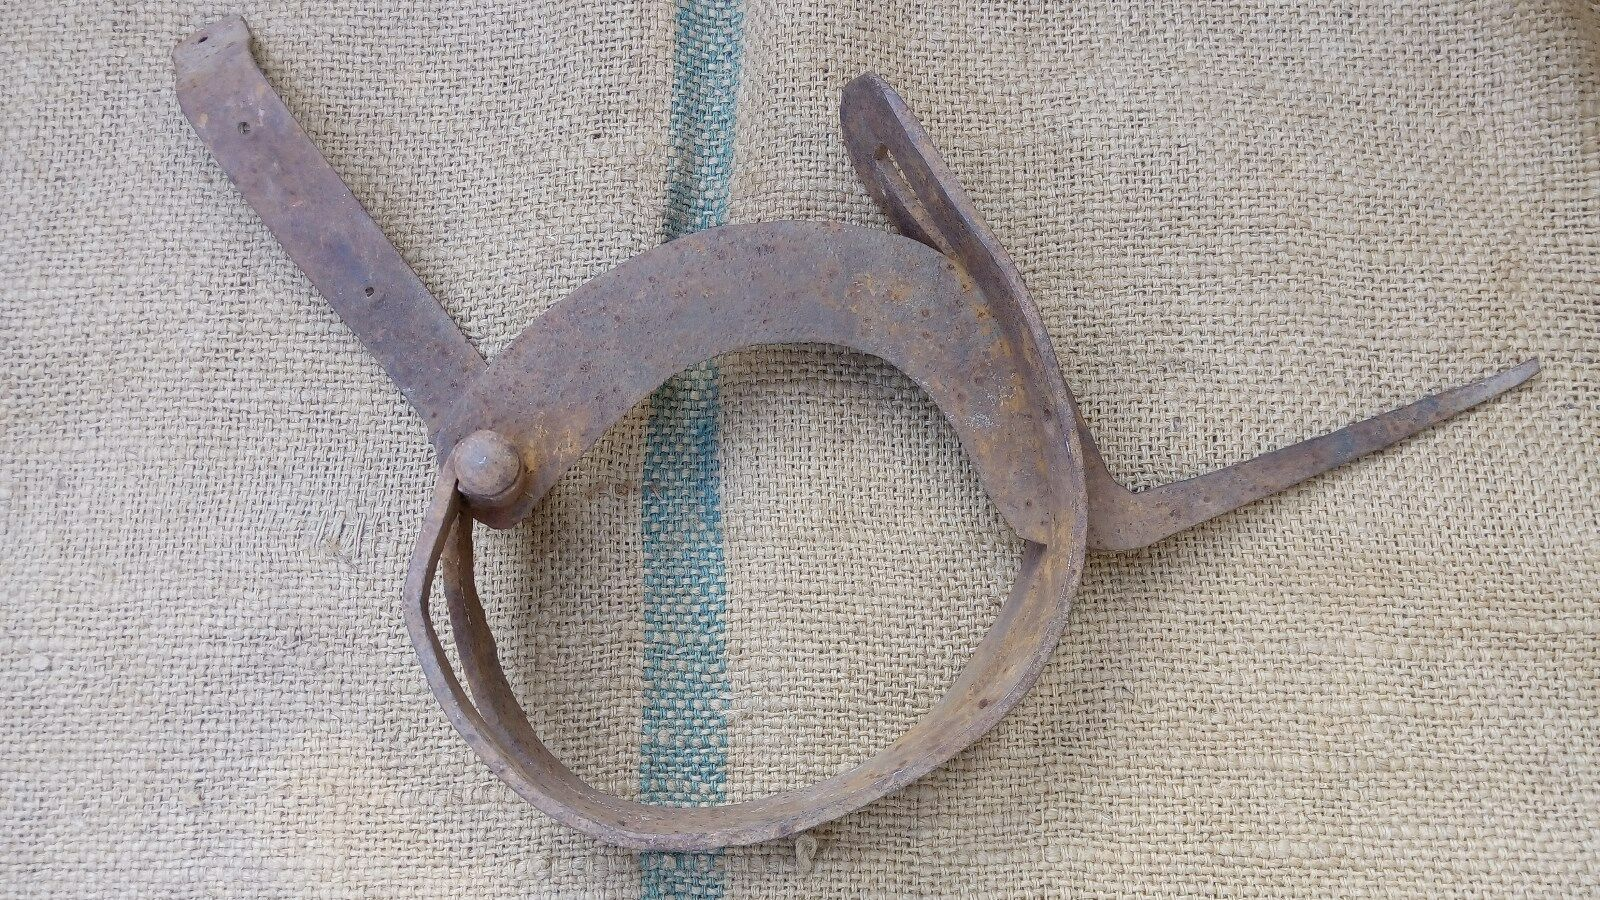 Antique Wrought Iron Straw Cutter Farm Tool 19Th Century